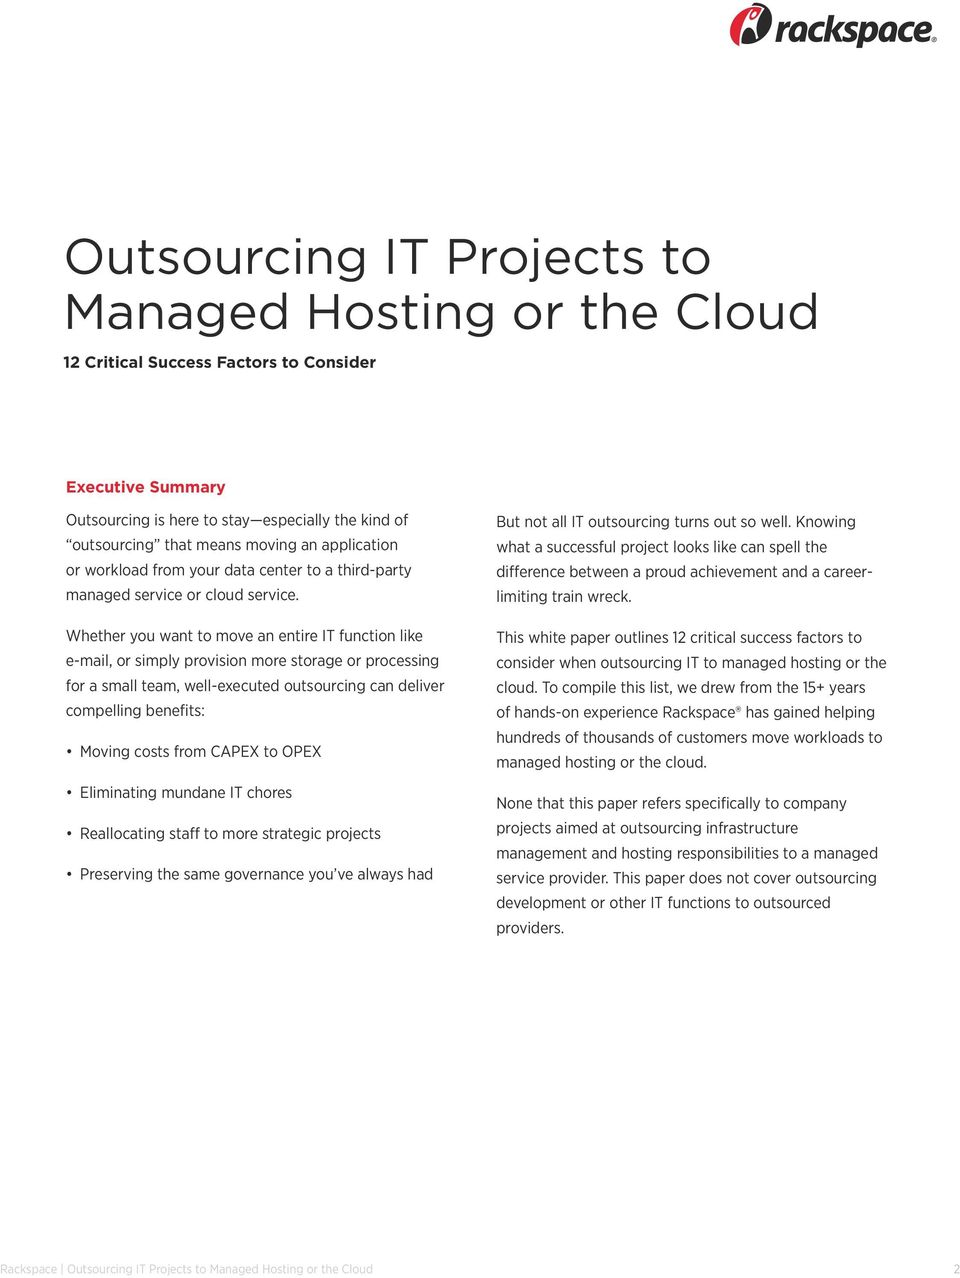 Whether you want to move an entire IT function like e-mail, or simply provision more storage or processing for a small team, well-executed outsourcing can deliver compelling benefits: Moving costs